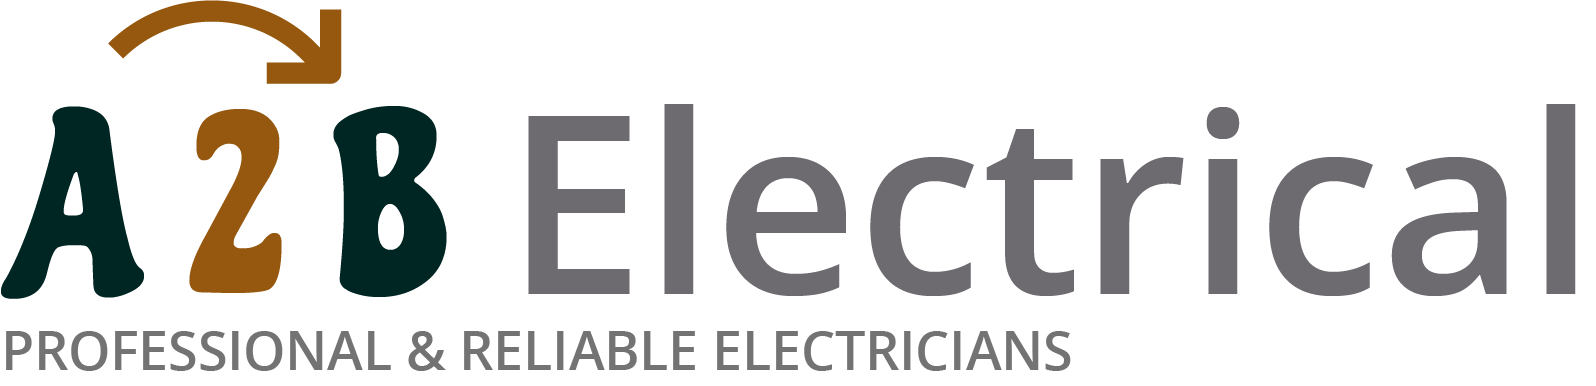 If you have electrical wiring problems in Chingford, we can provide an electrician to have a look for you.